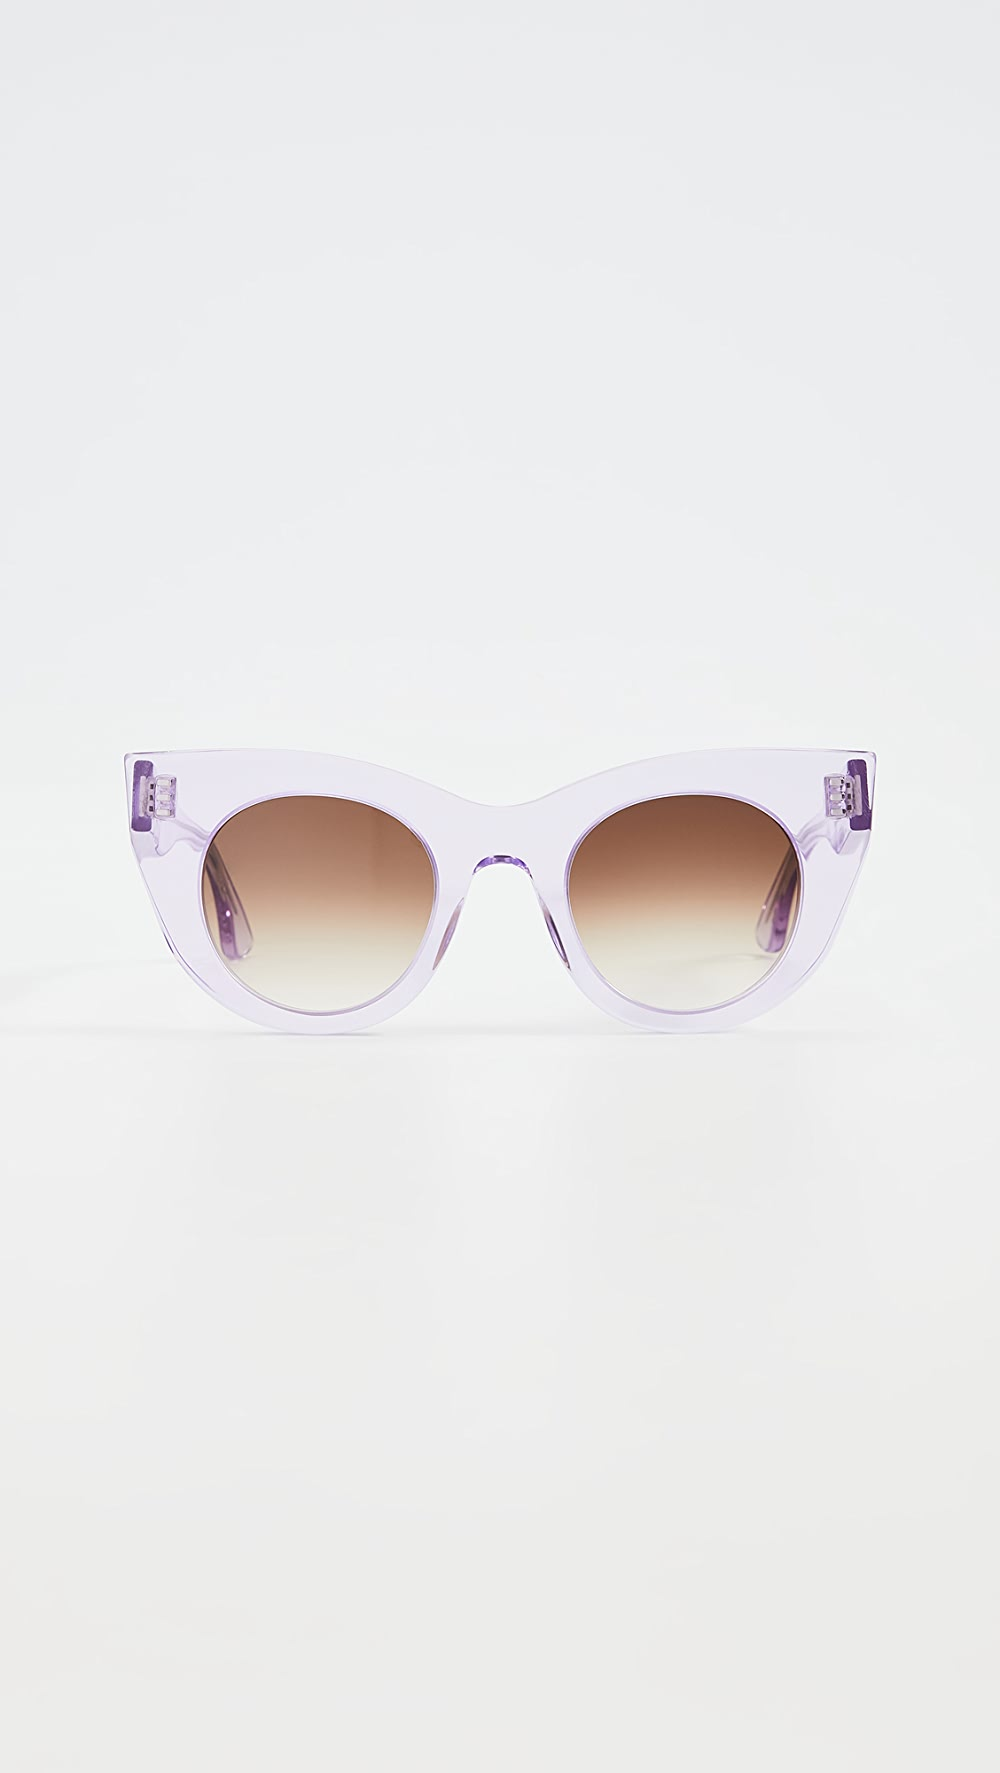 2019 Latest Design Thierry Lasry - Bluemoony 165 Sunglasses Promote The Production Of Body Fluid And Saliva